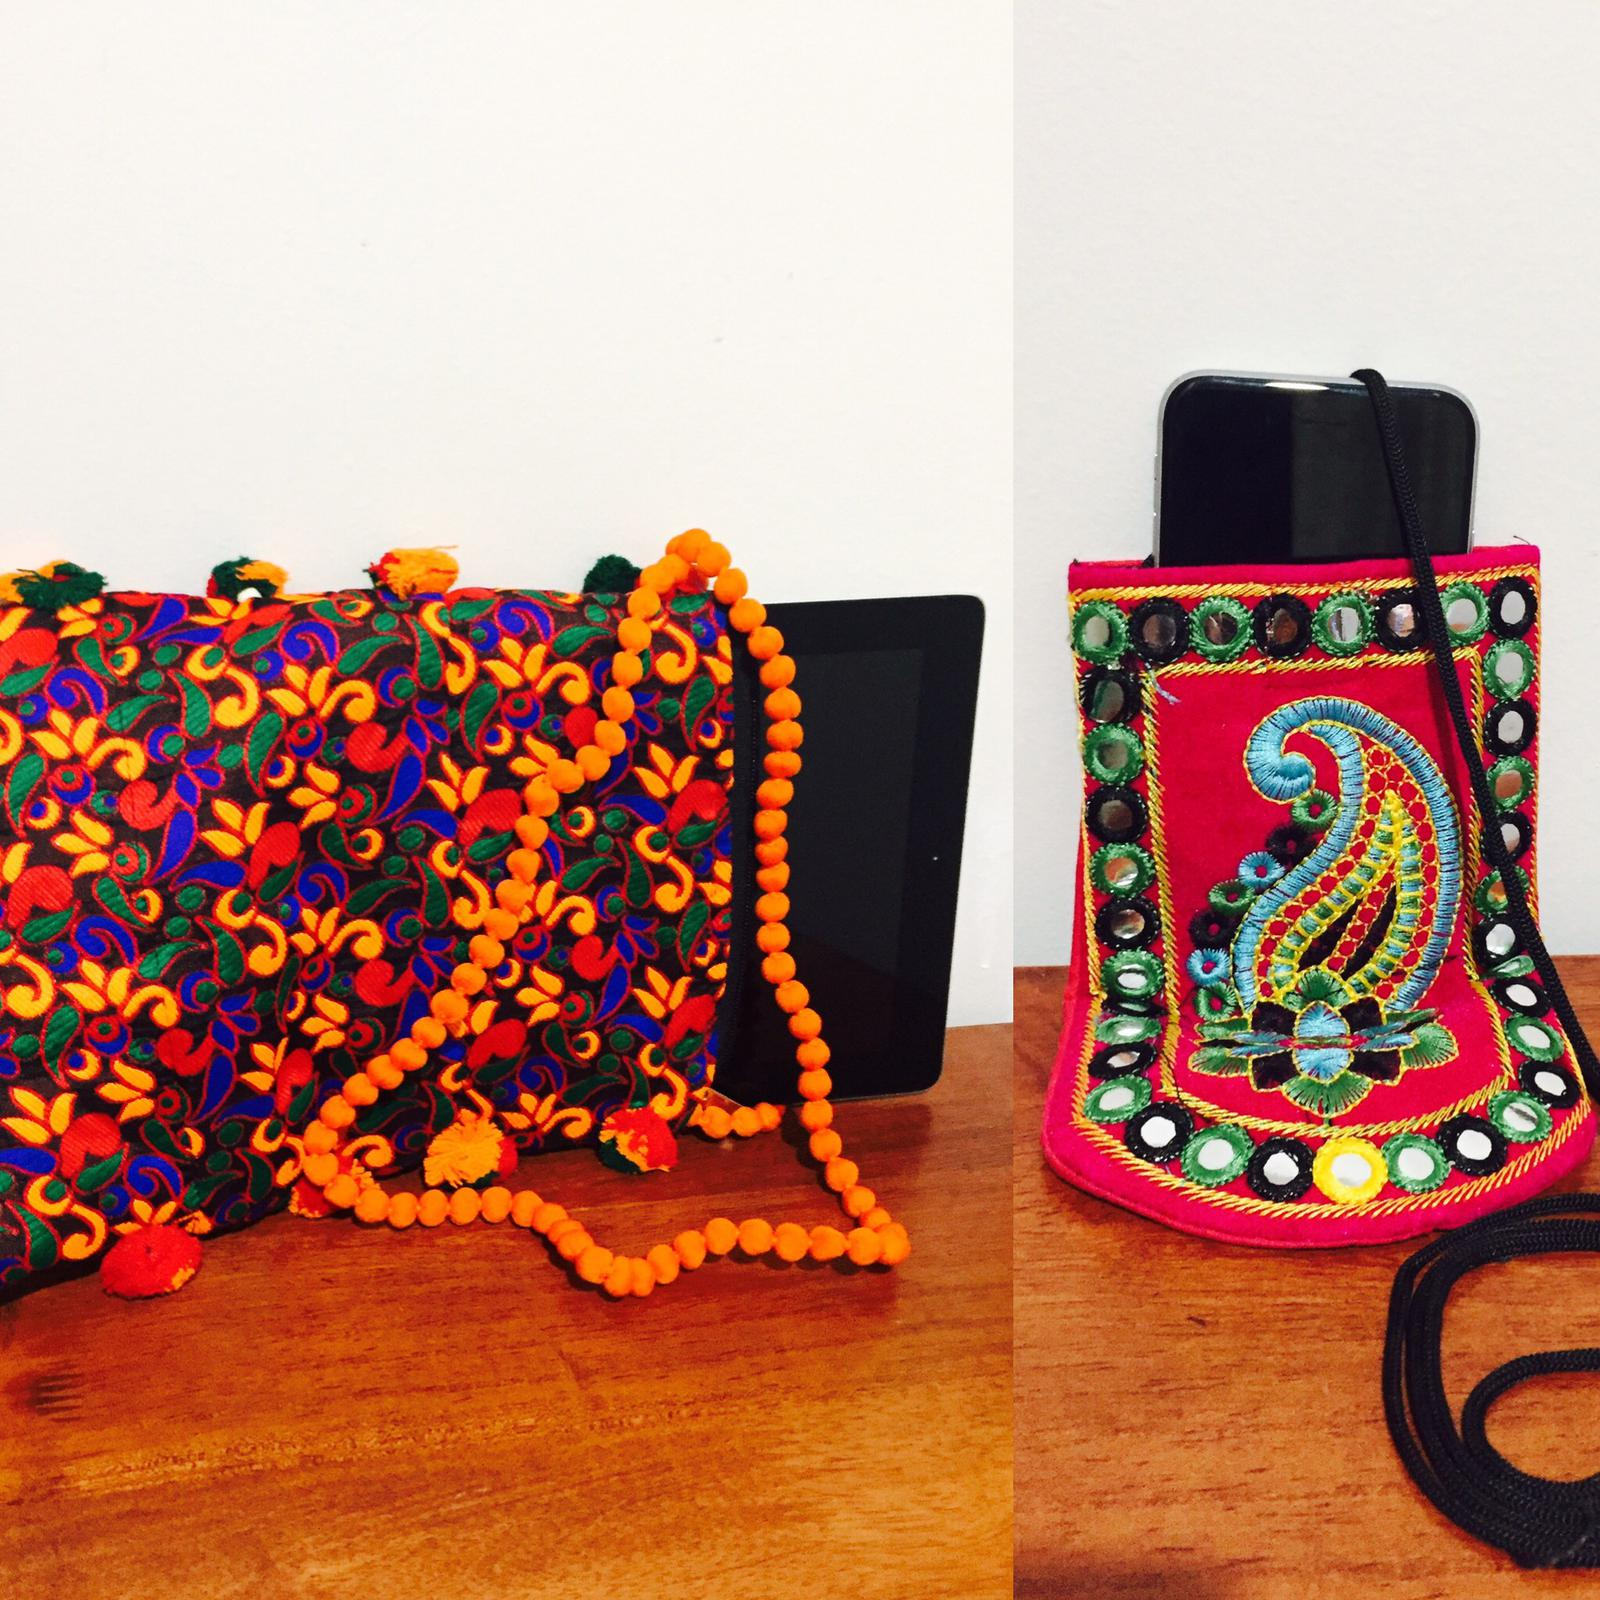 Handcrafted embroidered iPad /tablet carry on bag, mobile holder sling bag.